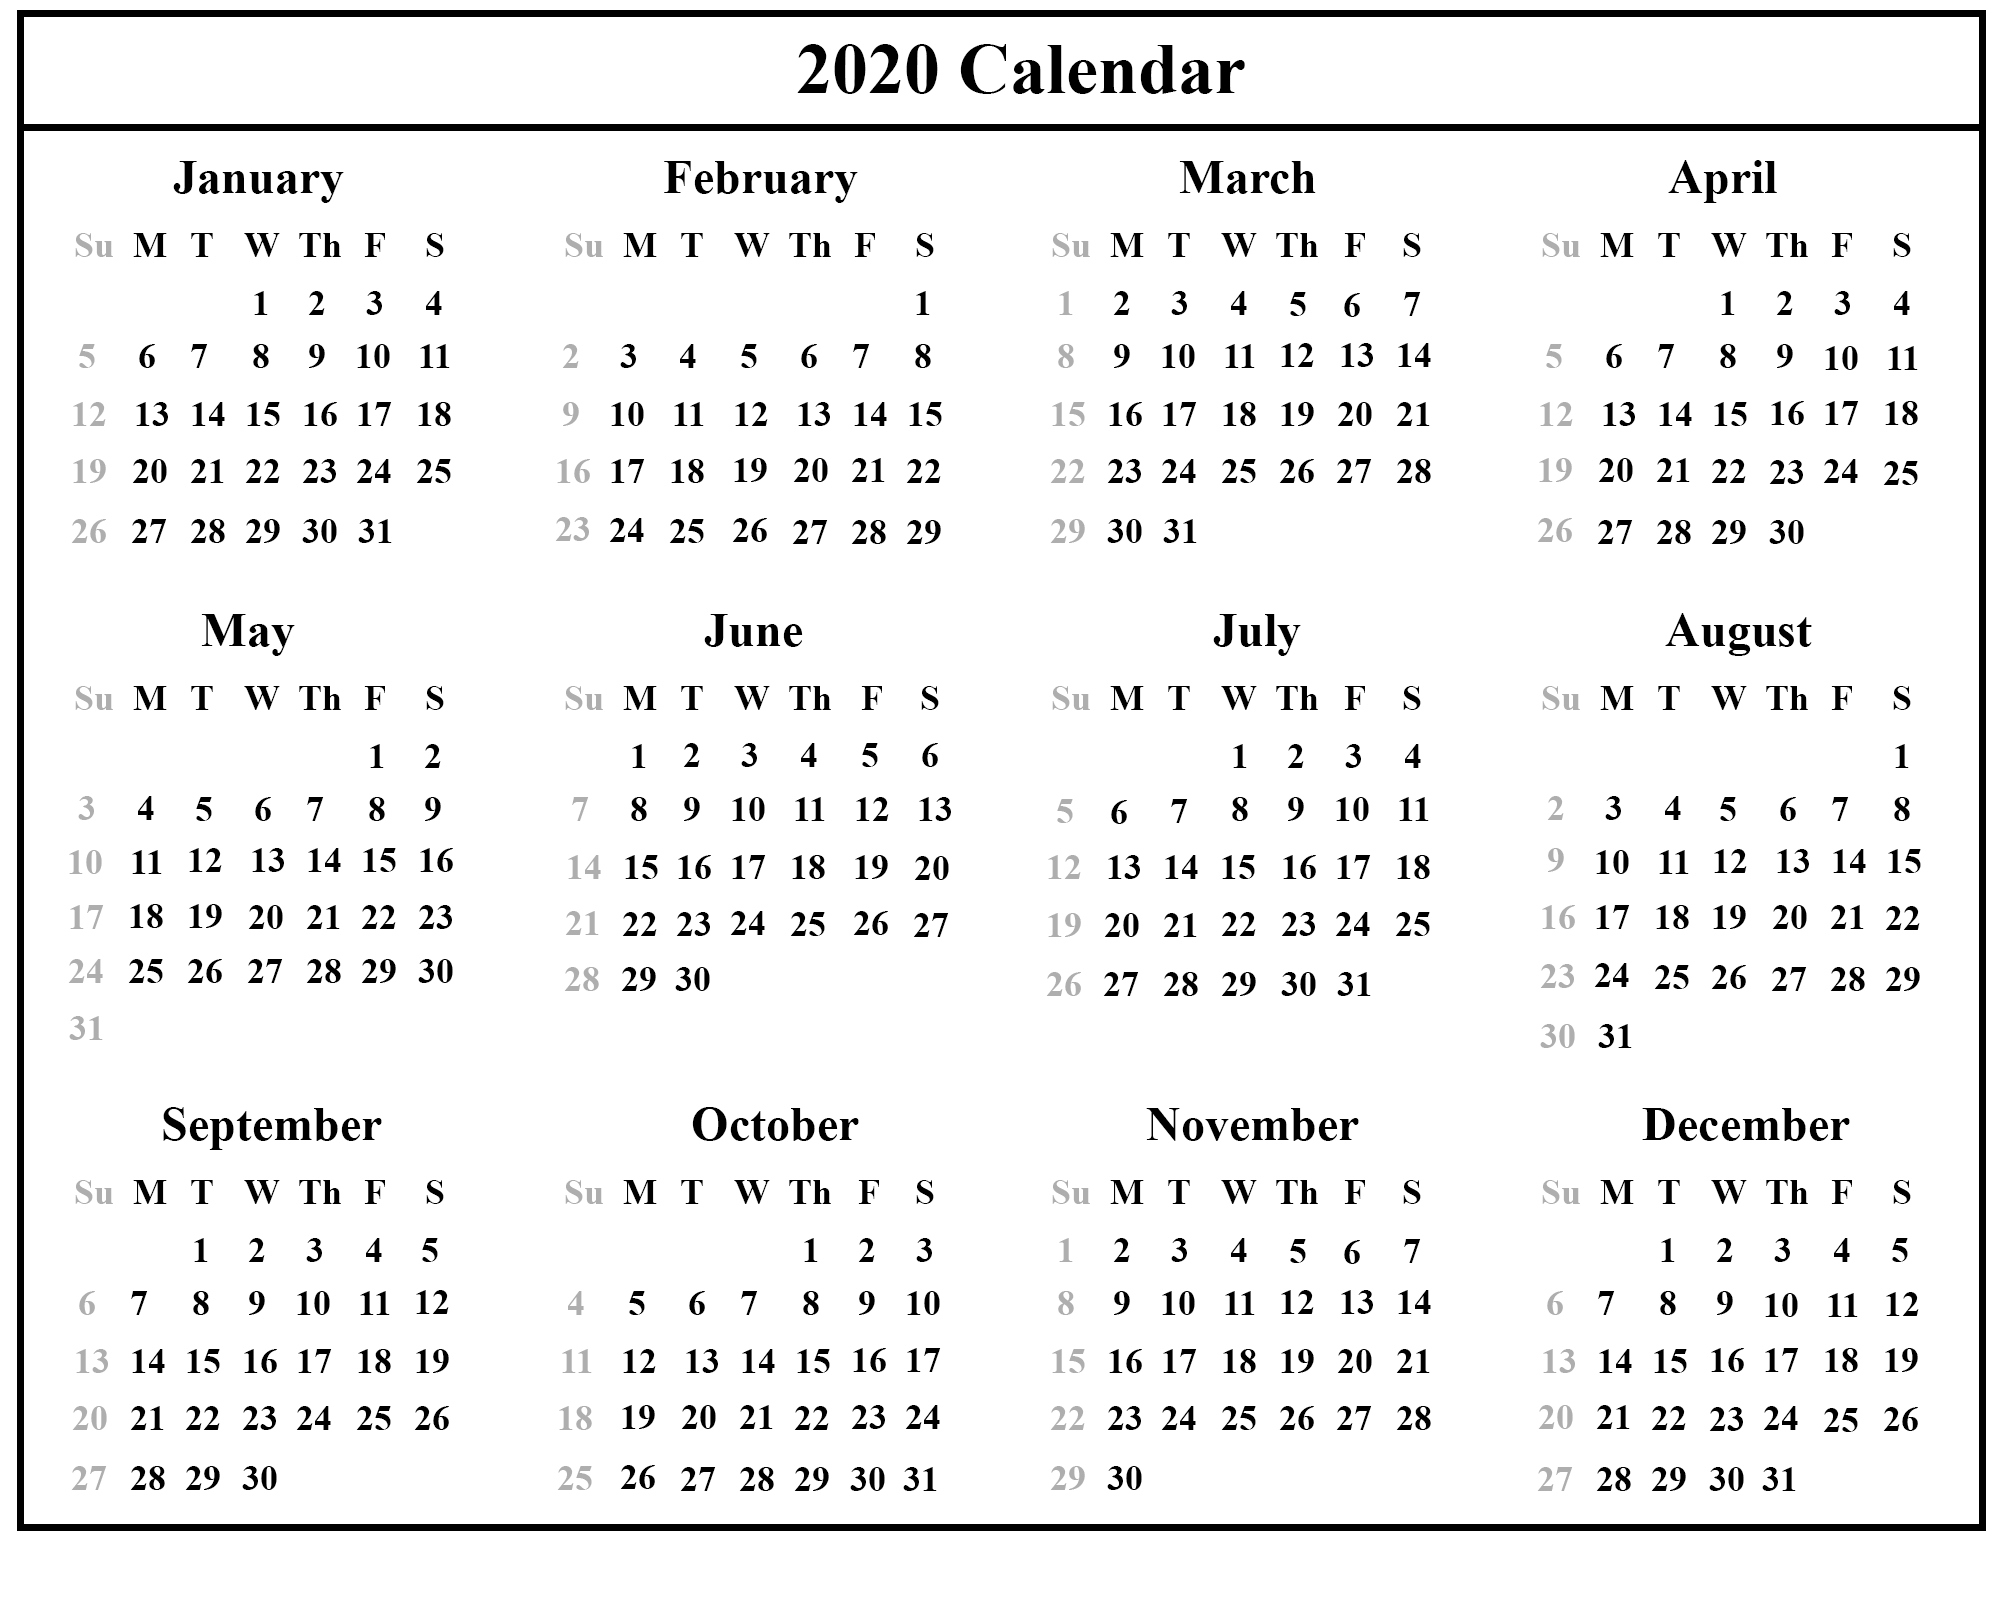 Free Printable Australia Calendar 2020 In Pdf, Excel & Word Format with Free Template 2020 Sunday To Saturday Calendar